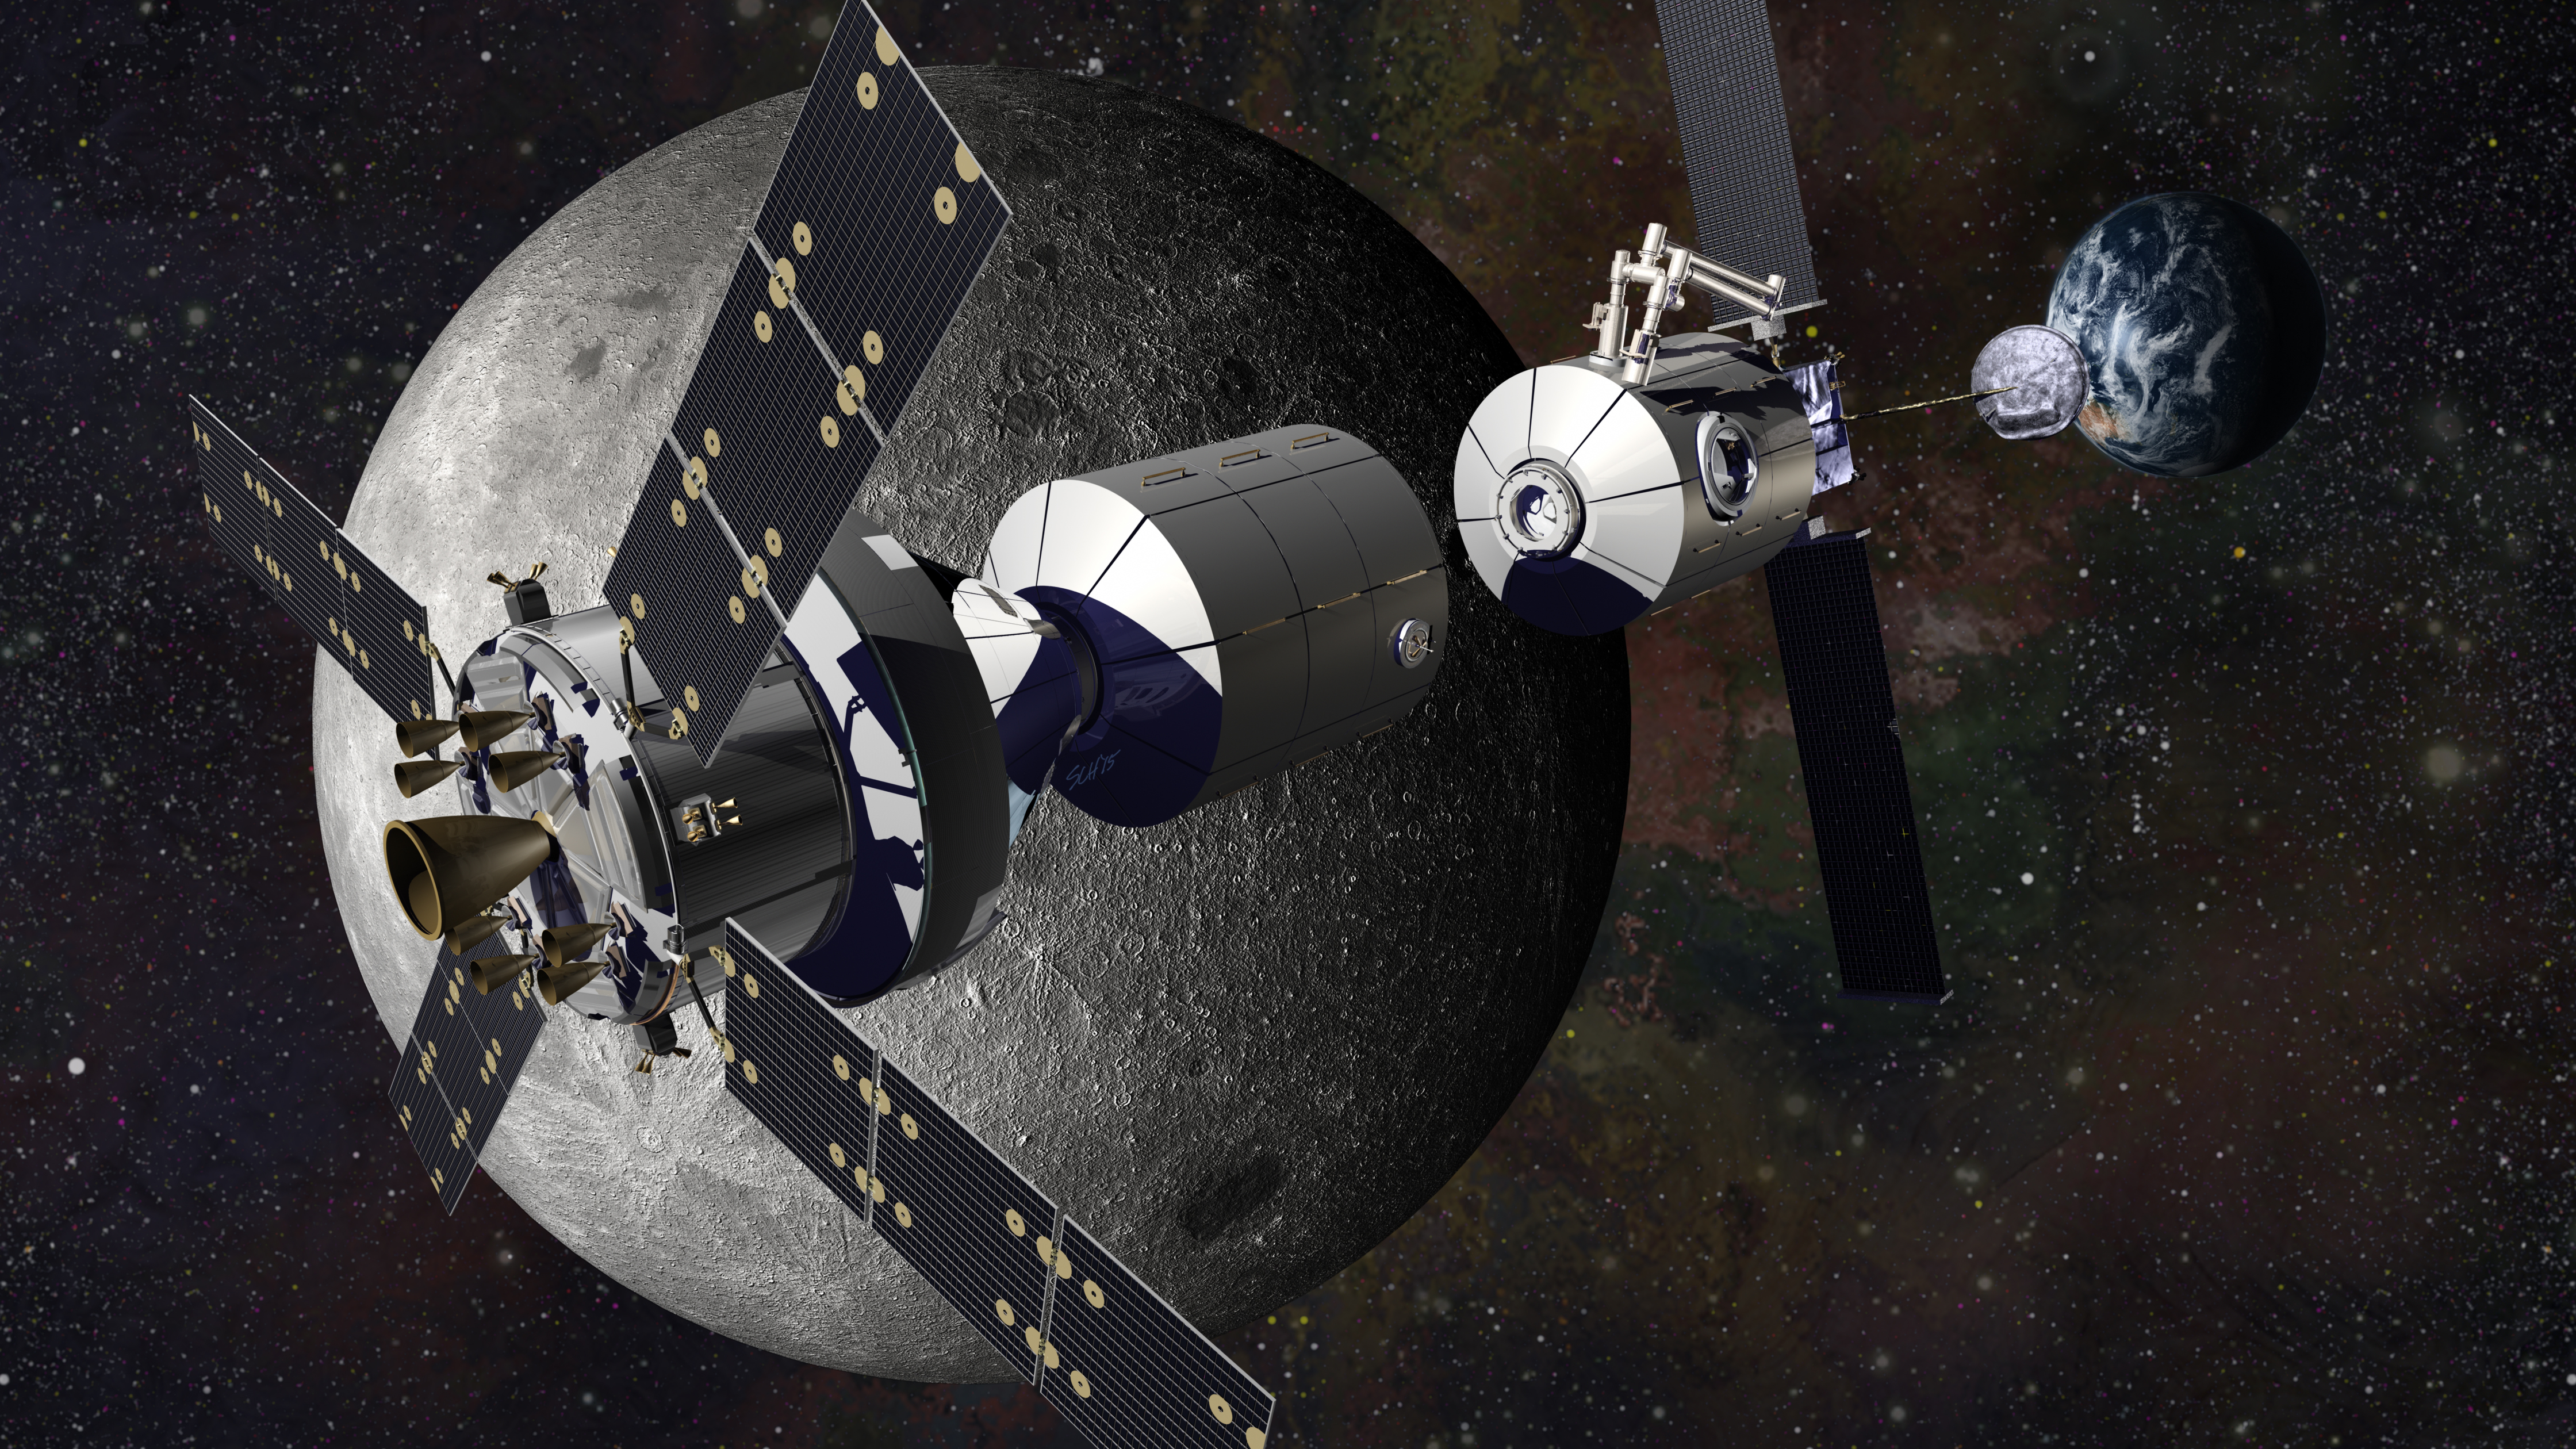 Cislunar Habitats NASA's Orion Spacecraft